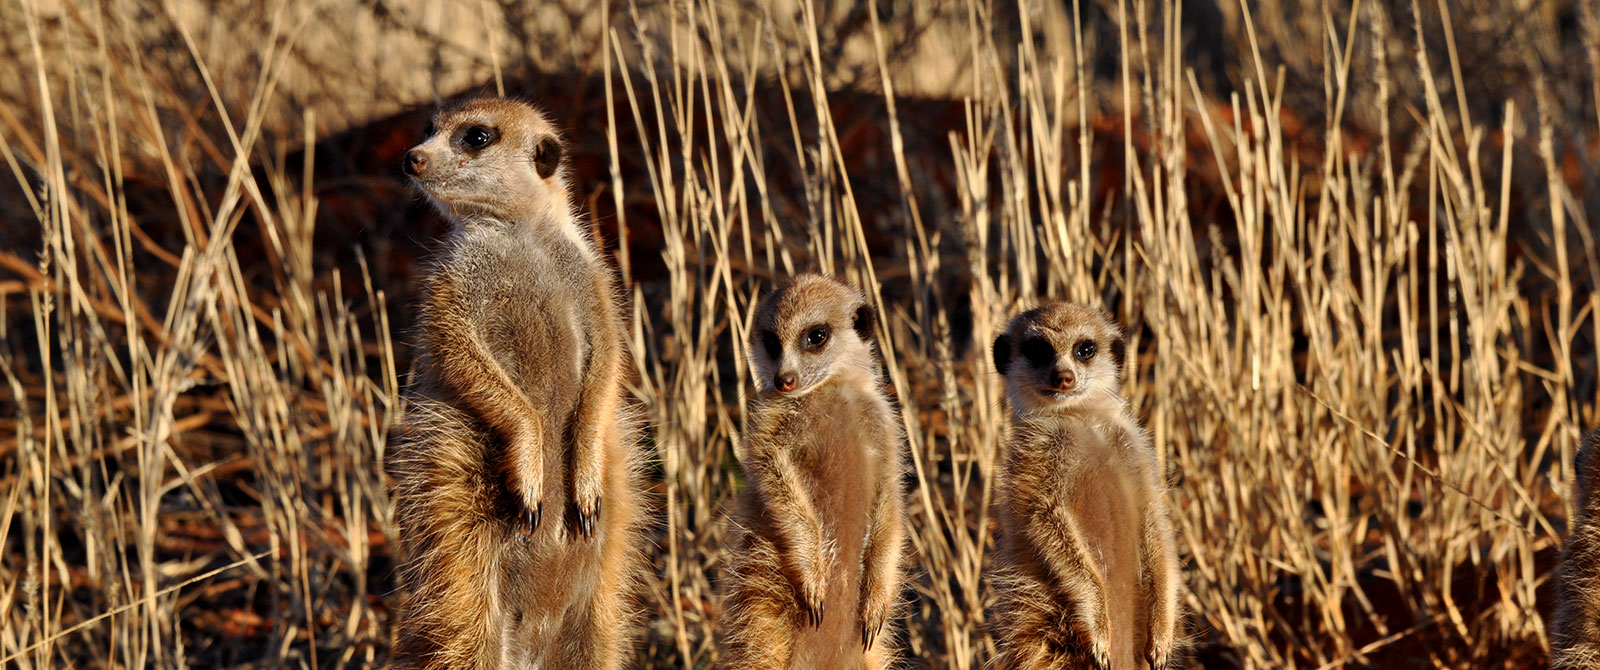 Habituated Meerkats at Tswalu Kalahari Game Reserve - Cape Town Explorer and Family Safari Adventure